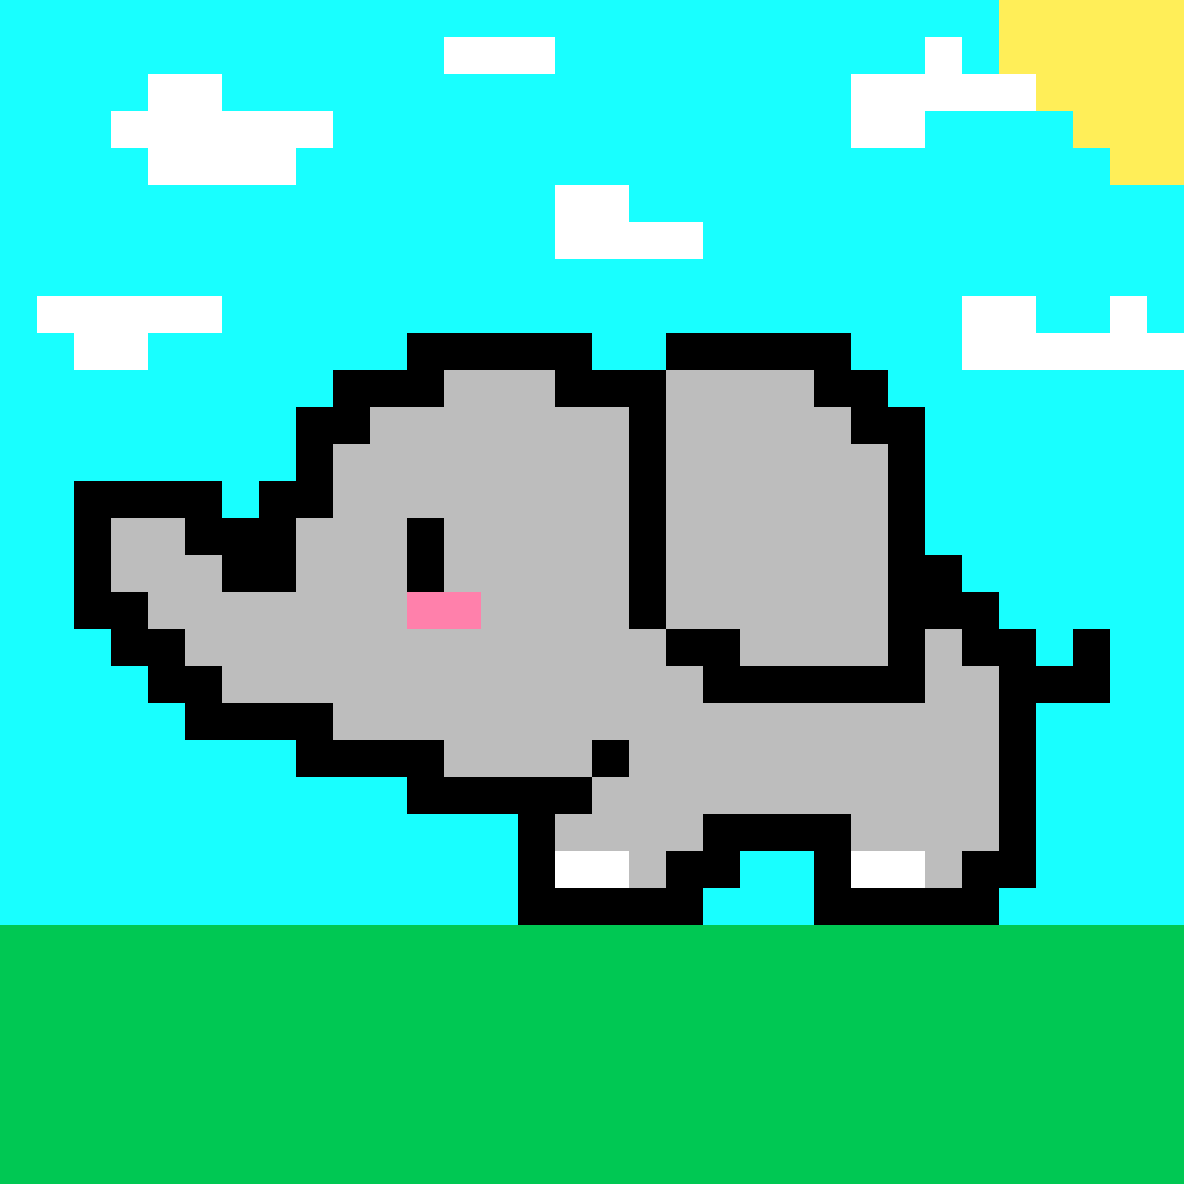 Cute Little Elephant! $W$ by JORDYNDEMEO